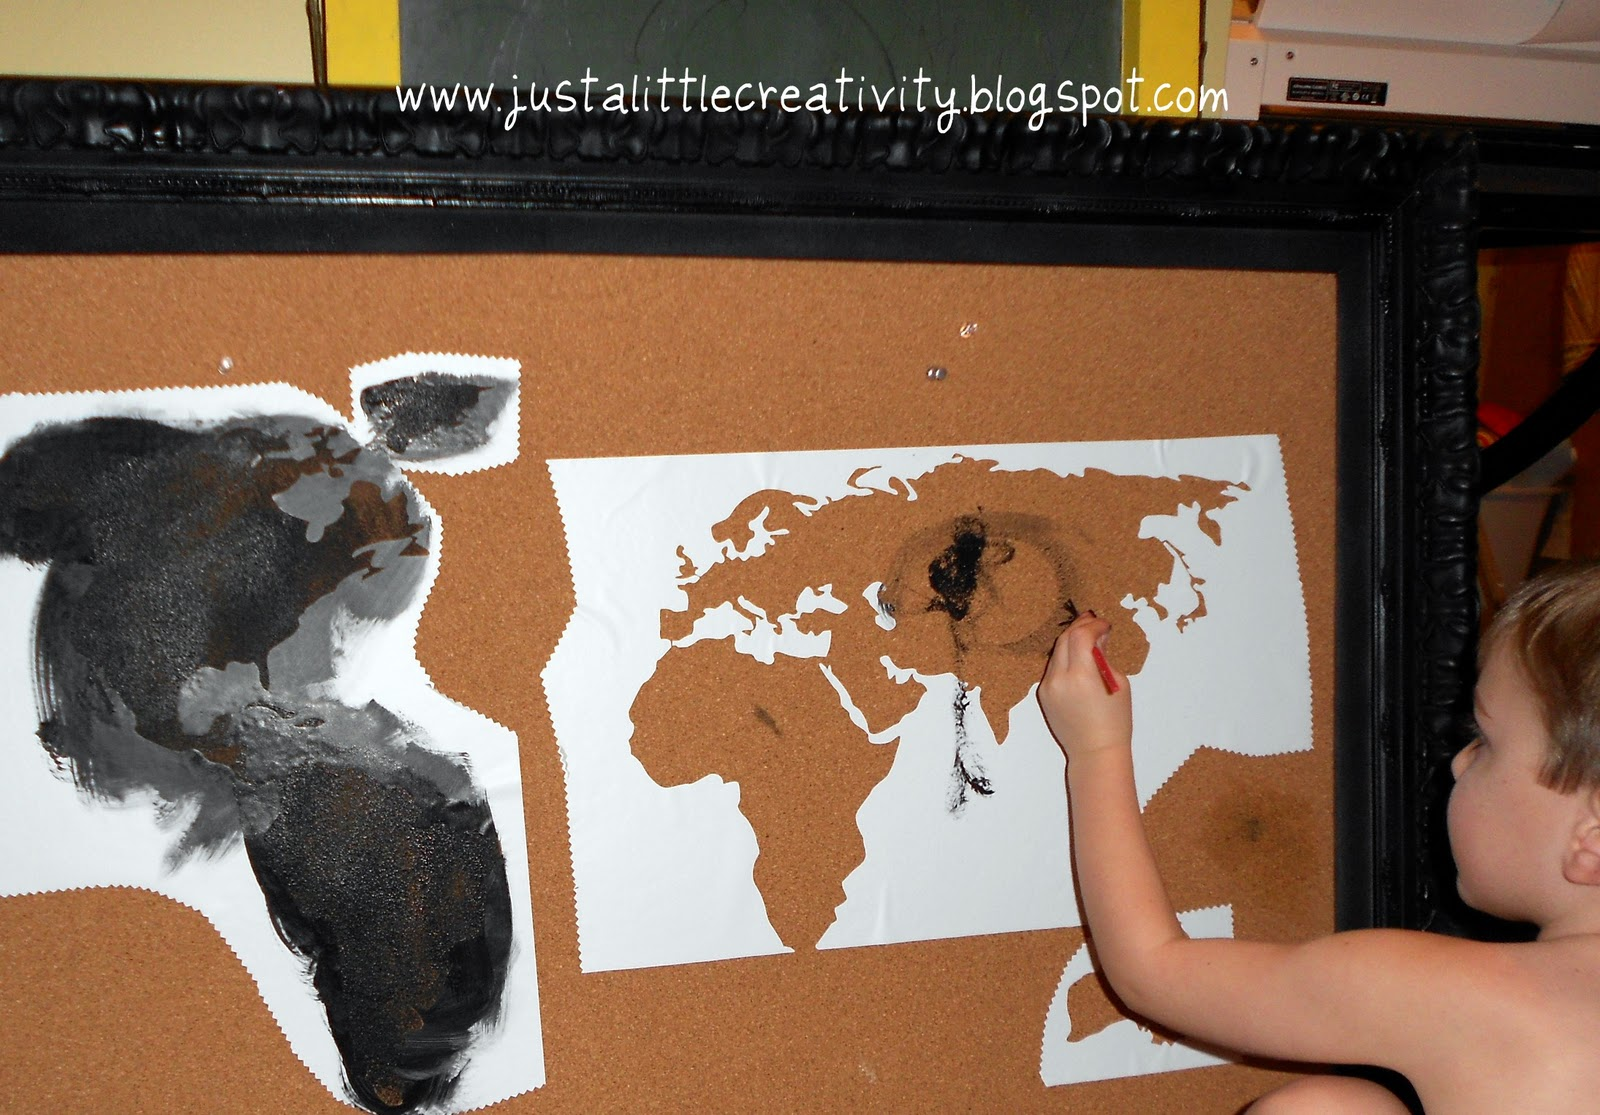 Travel map cork board ballard inspired knockoff just a little using my new silhouette cameo i cut a map of the world out of vinyl using the vinyl as a stencil i and my three year old helper painted in the gumiabroncs Image collections